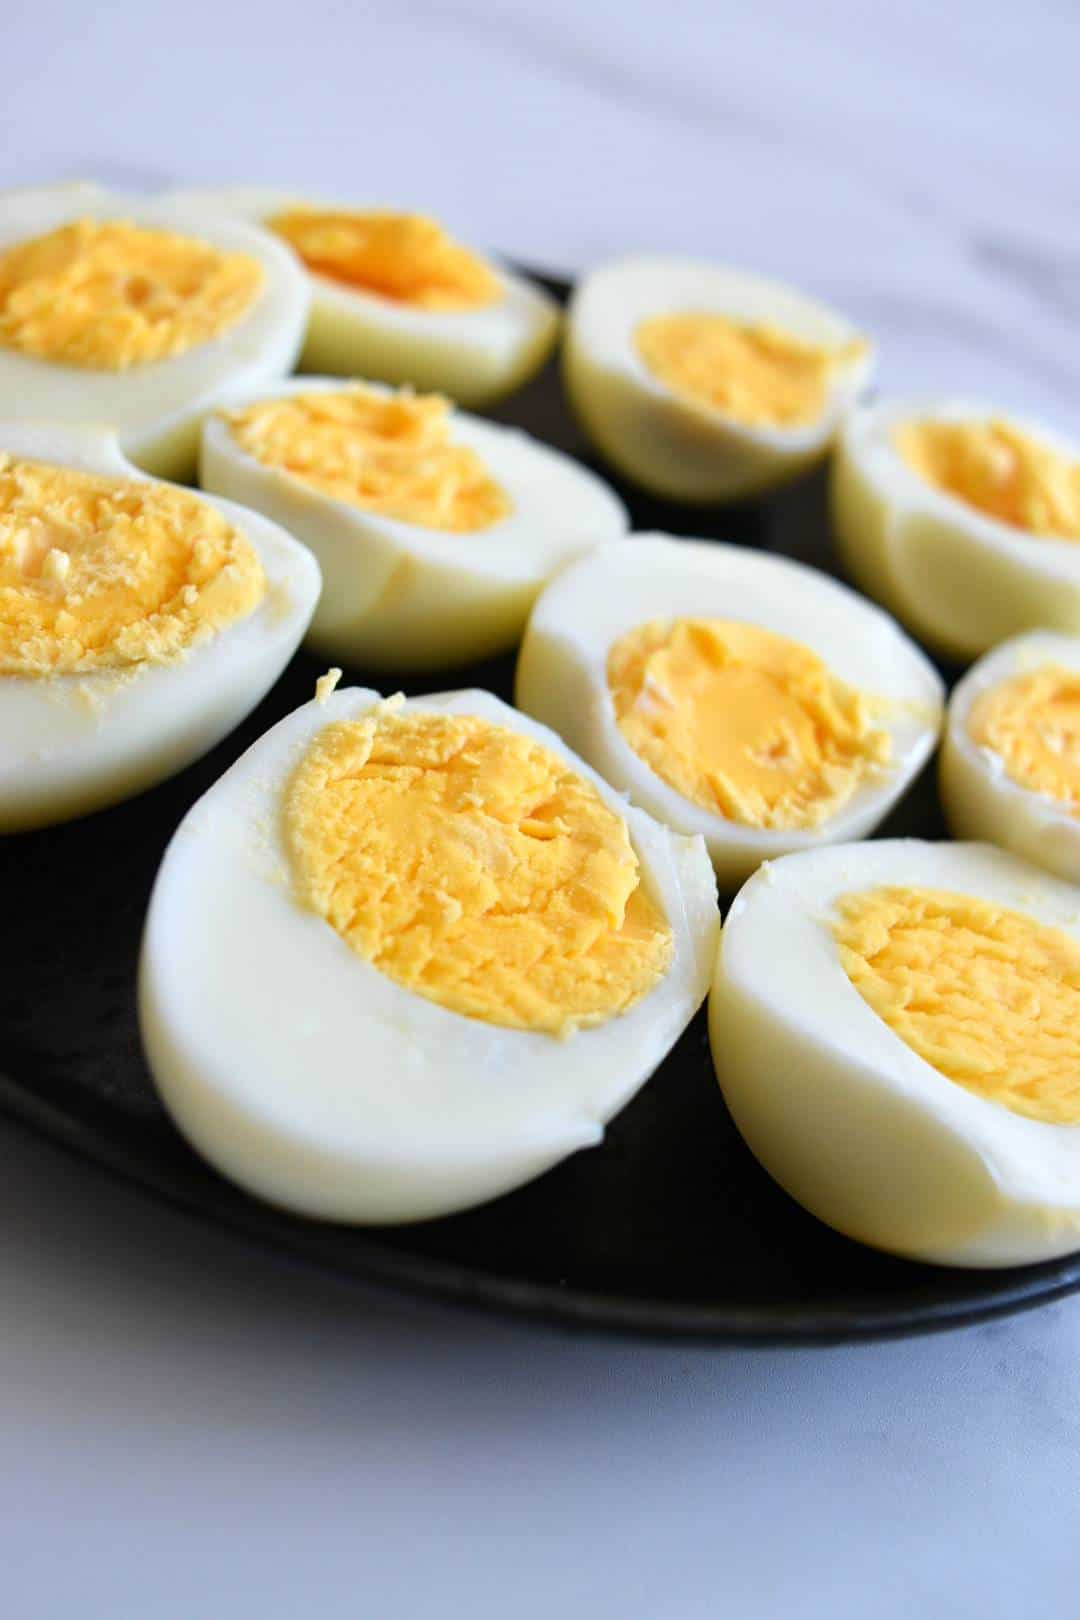 Hard boiled eggs cut in half on a plate.